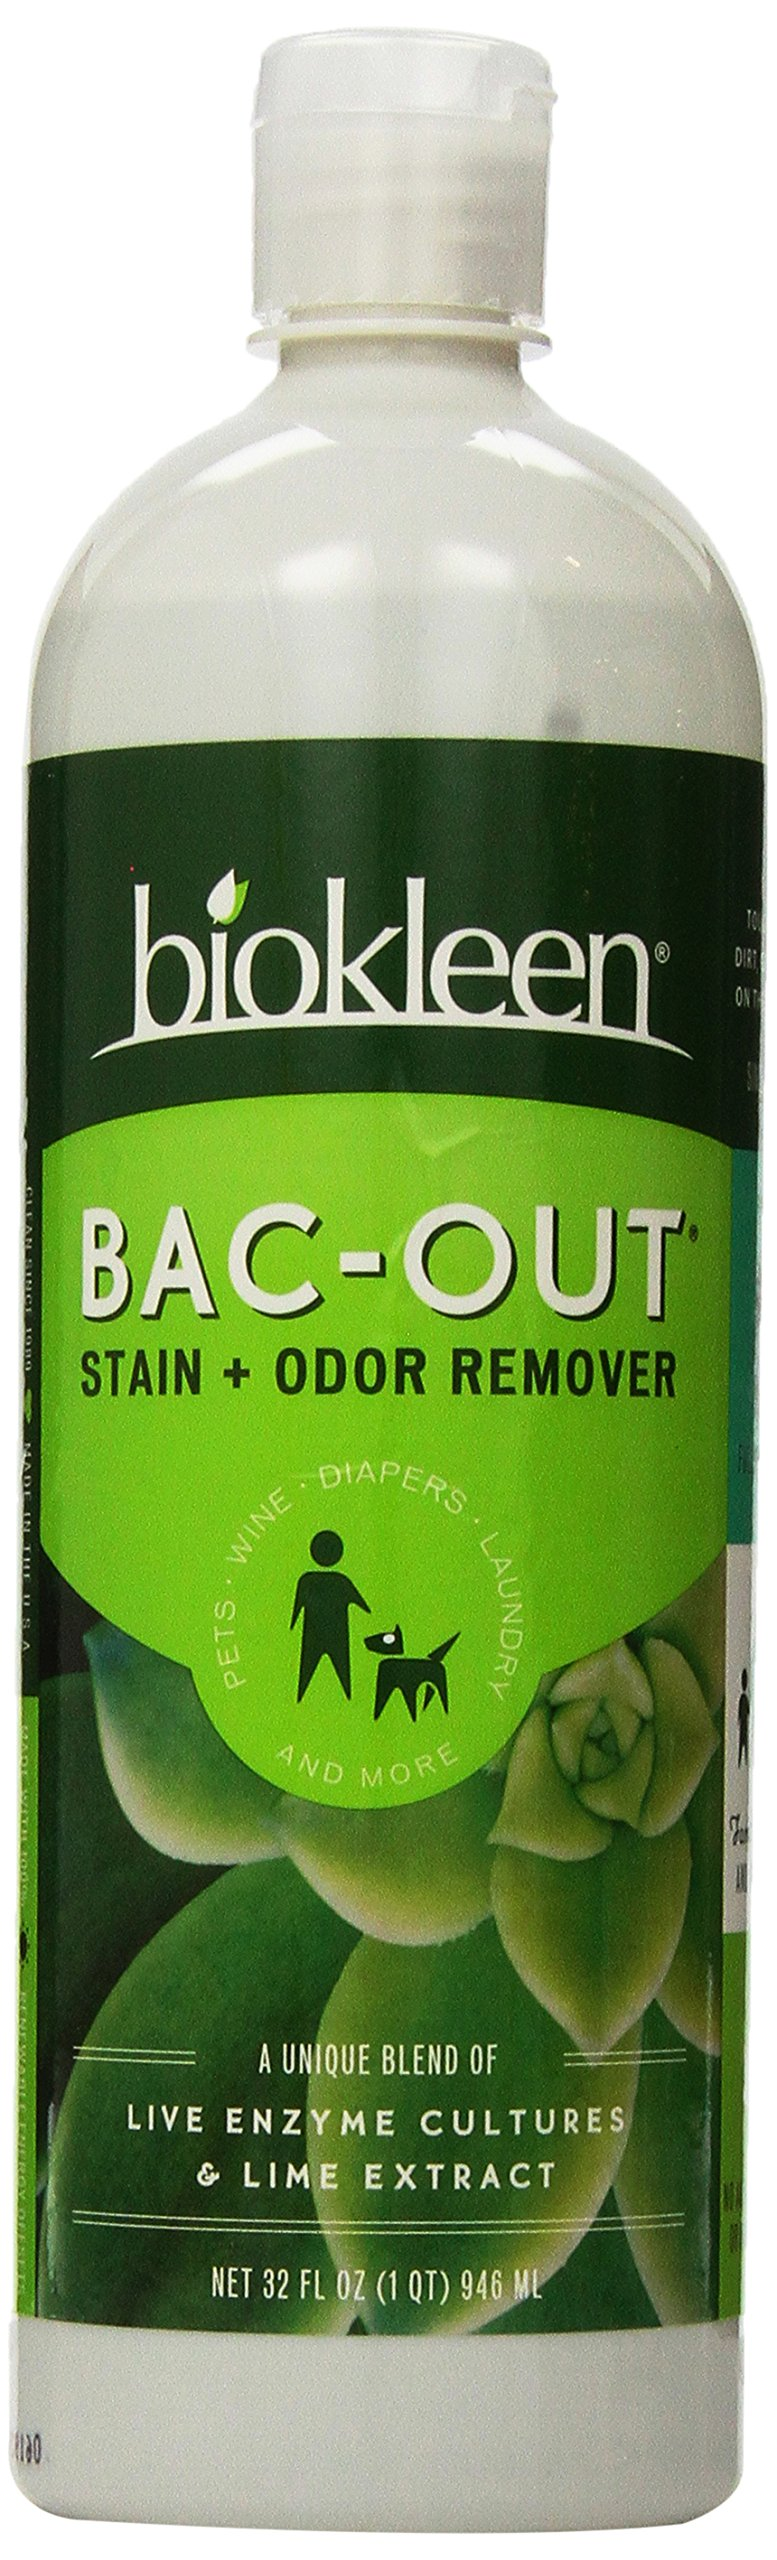 Bacout stain and odor eliminator 32 fl oz liquid odor